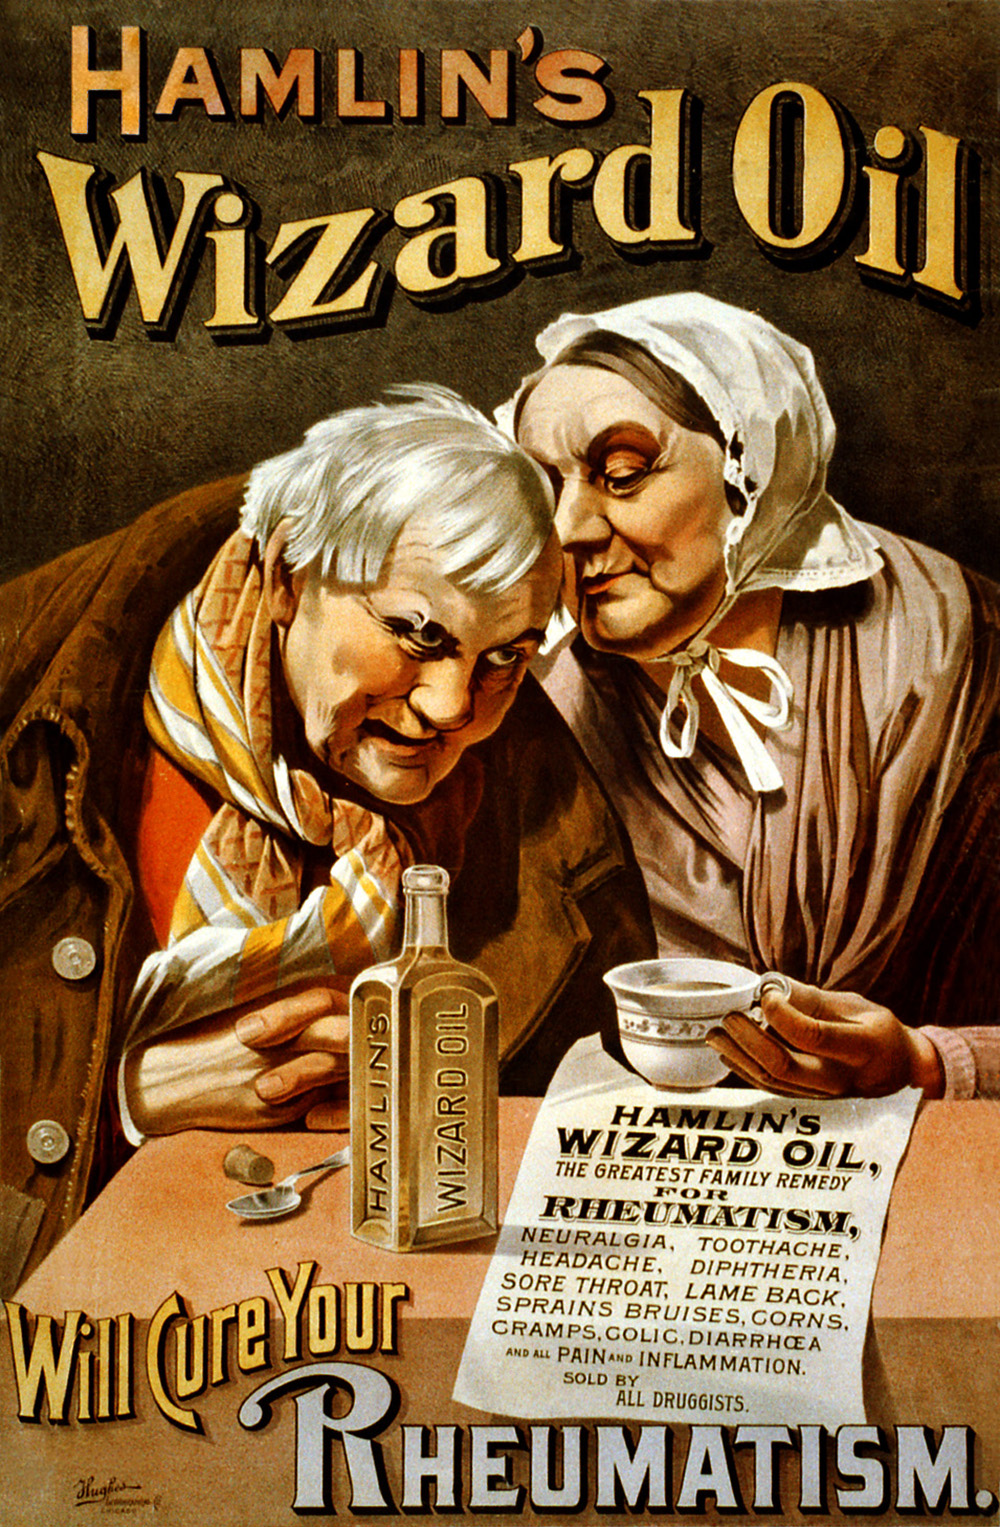 Hamlin's Wizard Oil advertisement by Hughes Lithographers, 1890.